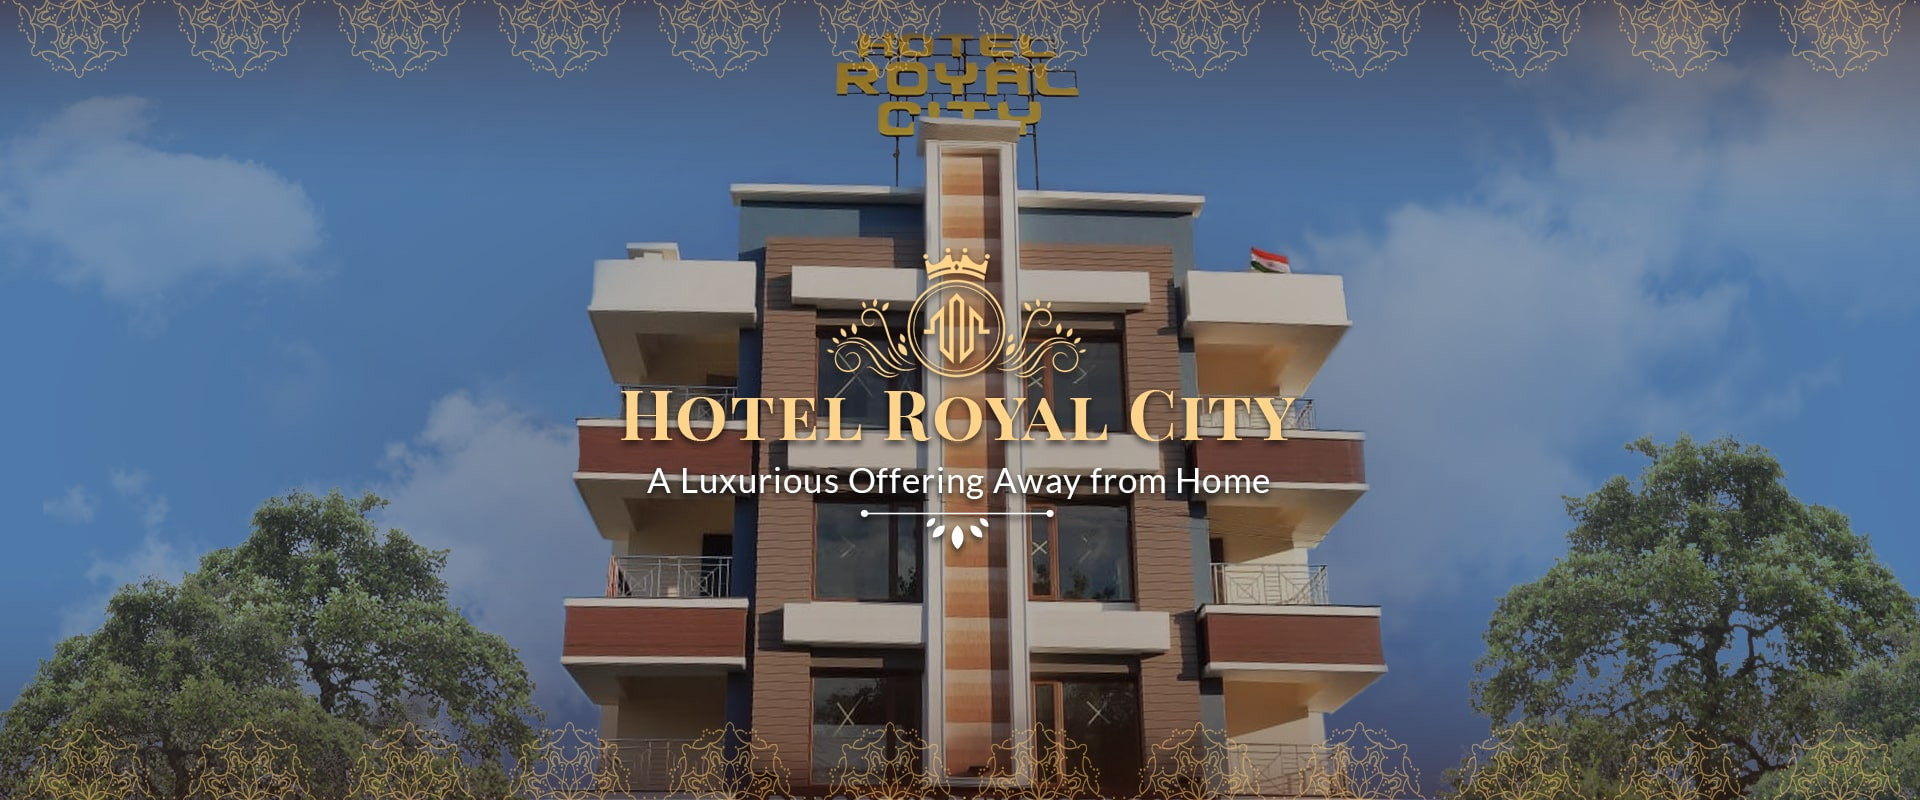 Hotel Royal City